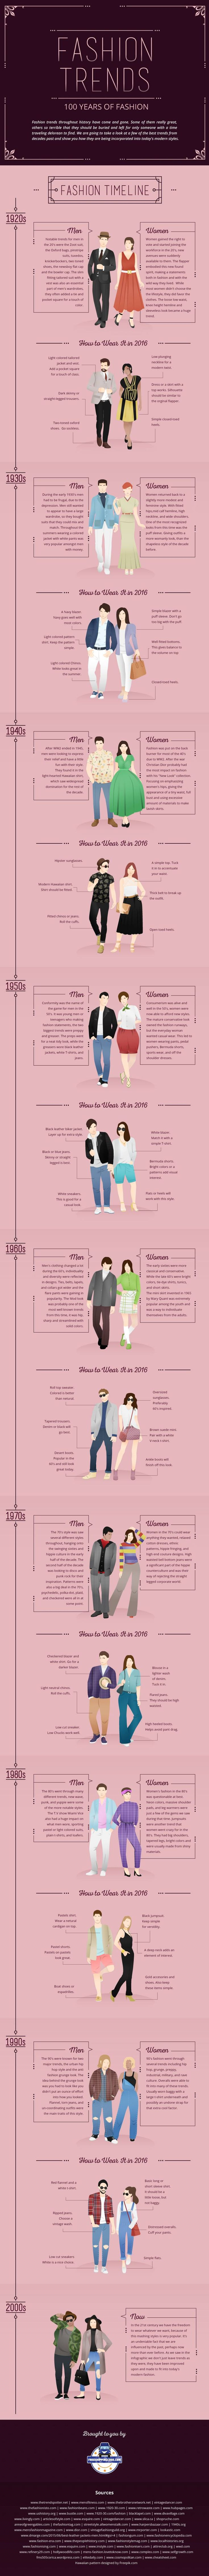 The Revolving Door of Fashion #Infographic #Fashion #History